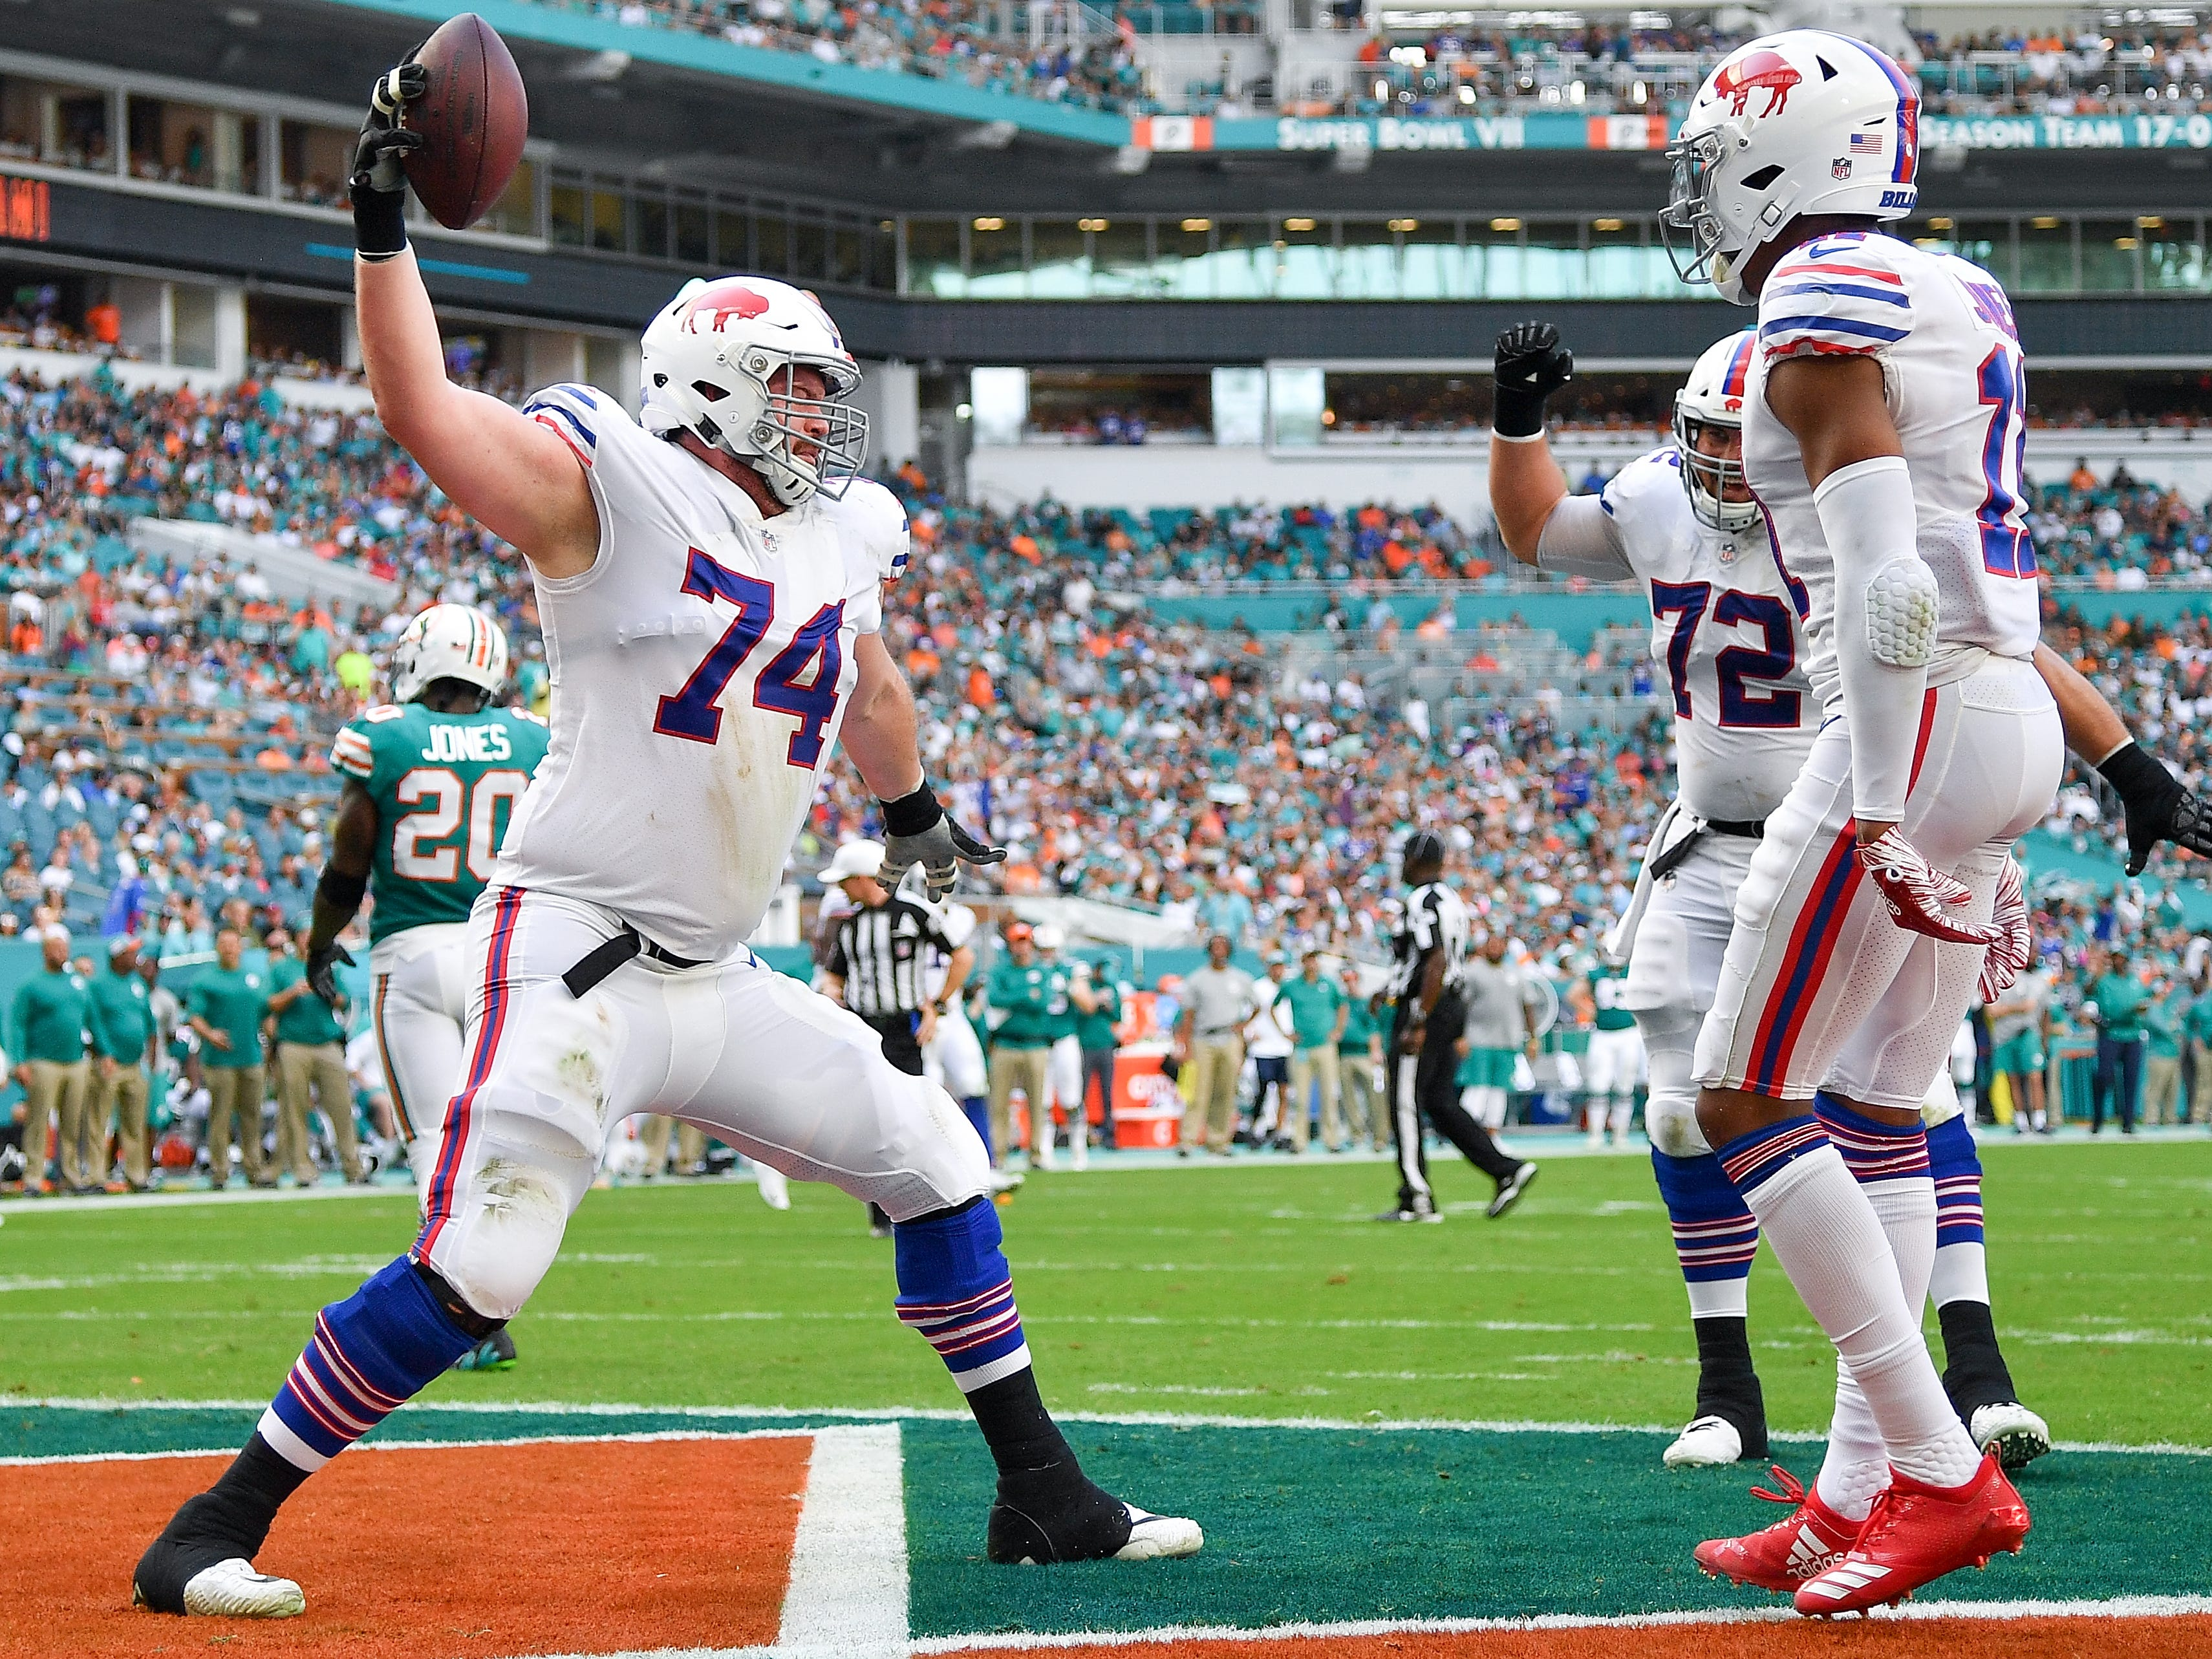 MIAMI, FL - DECEMBER 02: Jeremiah Sirles #74 of the Buffalo Bills celebrates after a touchdown during the second quarter against the Miami Dolphins at Hard Rock Stadium on December 2, 2018 in Miami, Florida. (Photo by Mark Brown/Getty Images)